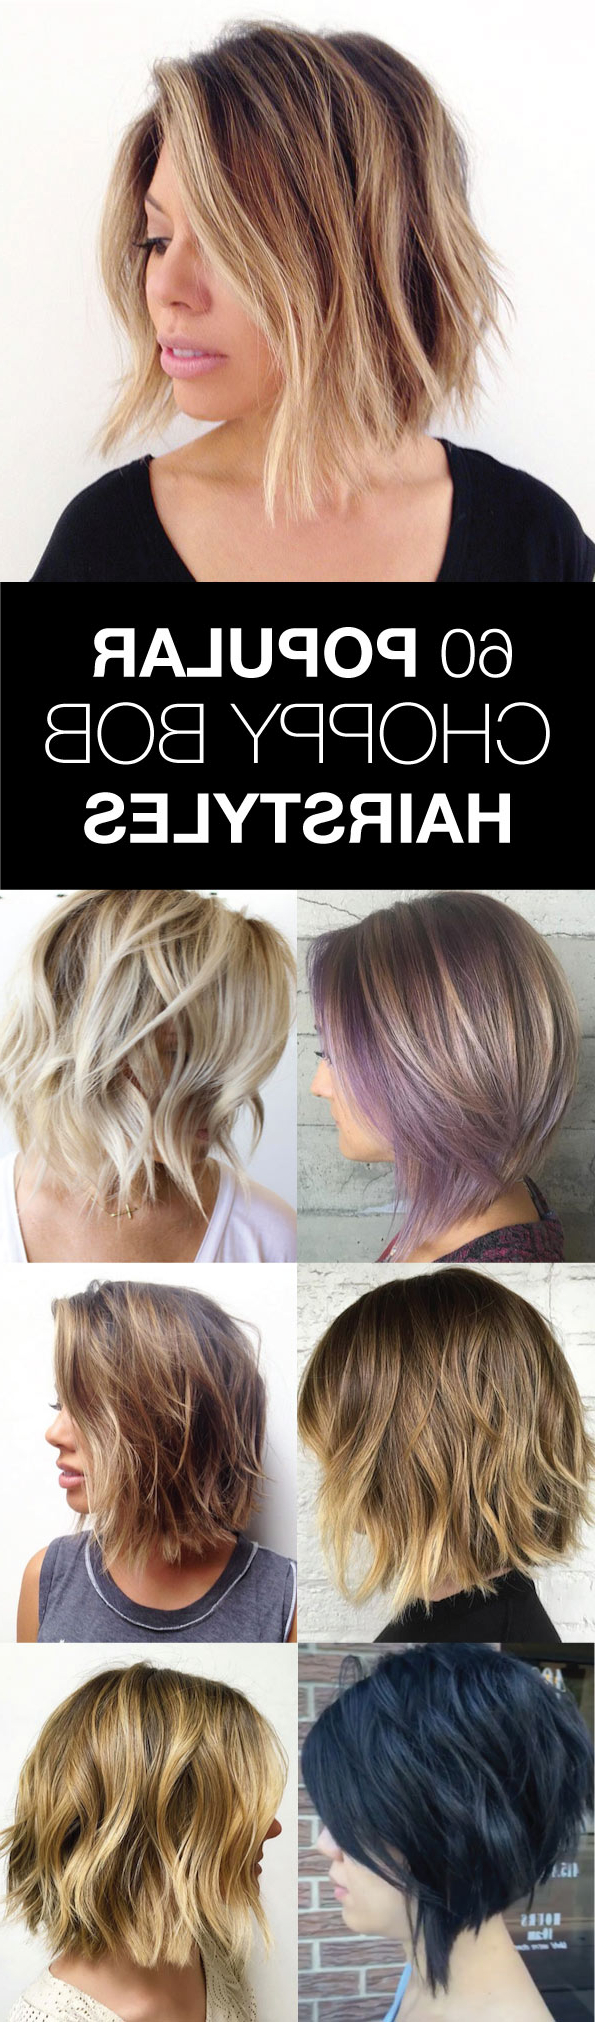 60 Popular Choppy Bob Hairstyles – Style Skinner In Choppy Brown And Lavender Bob Hairstyles (View 17 of 20)